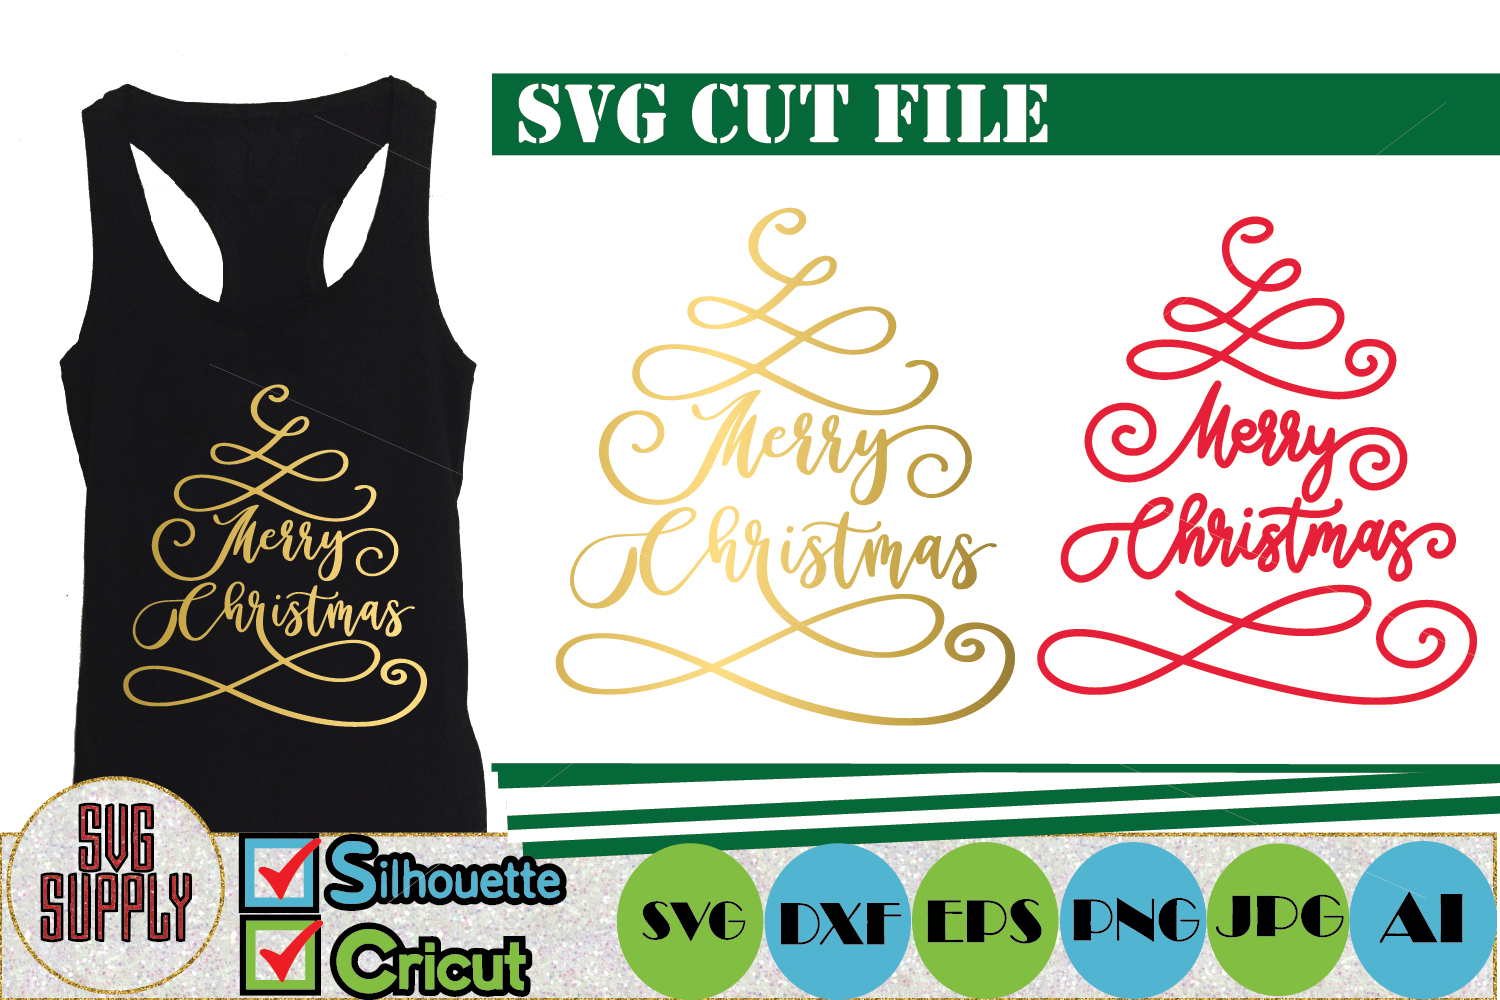 Merry Christmas Tree SVG Cut File example image 1